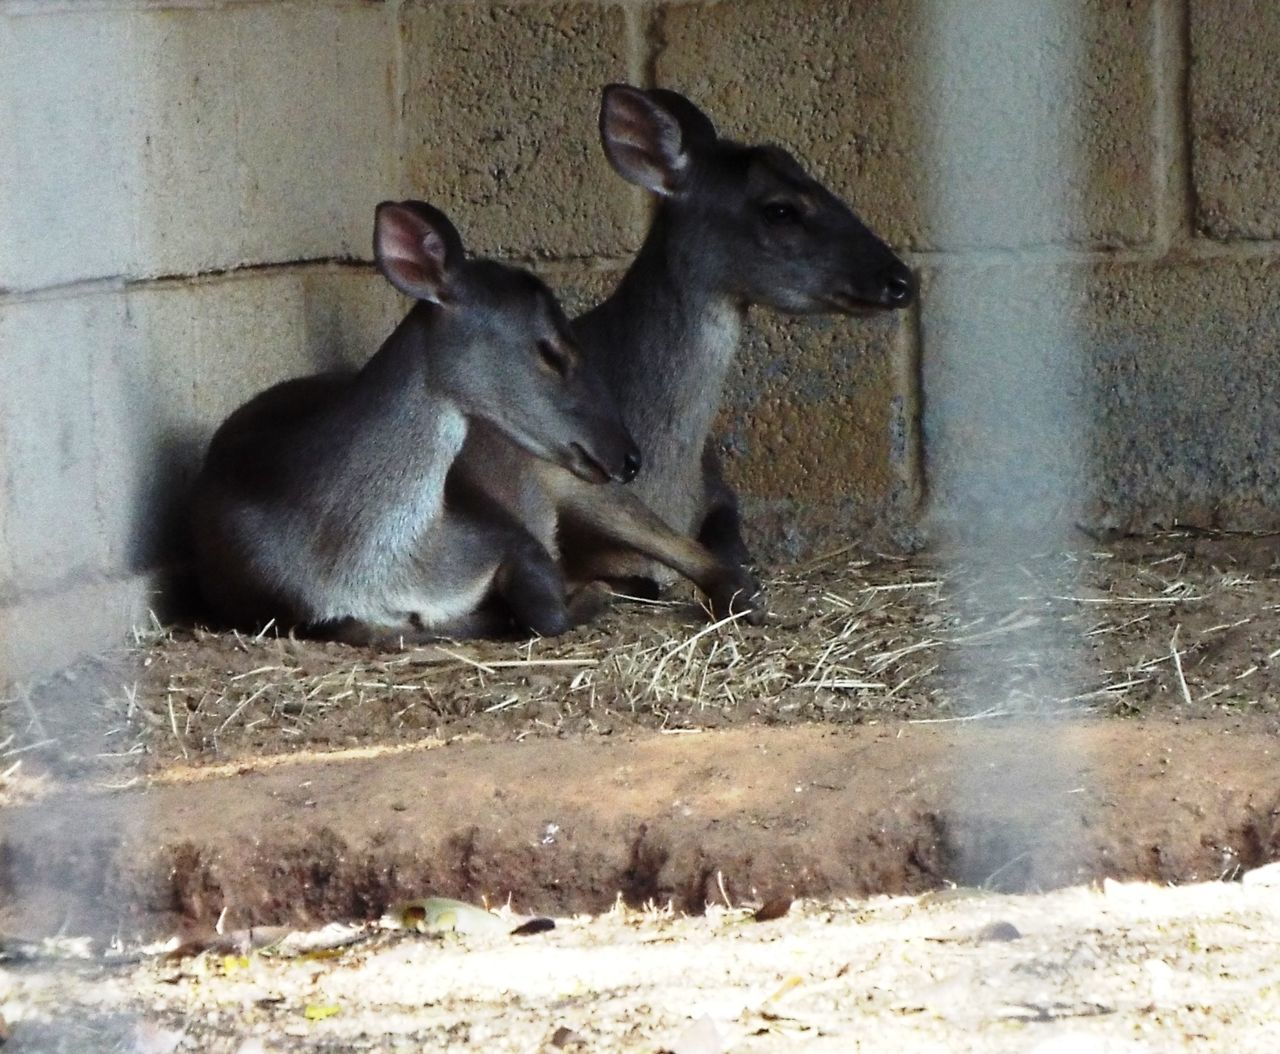 mammal, animal themes, no people, day, domestic animals, outdoors, nature